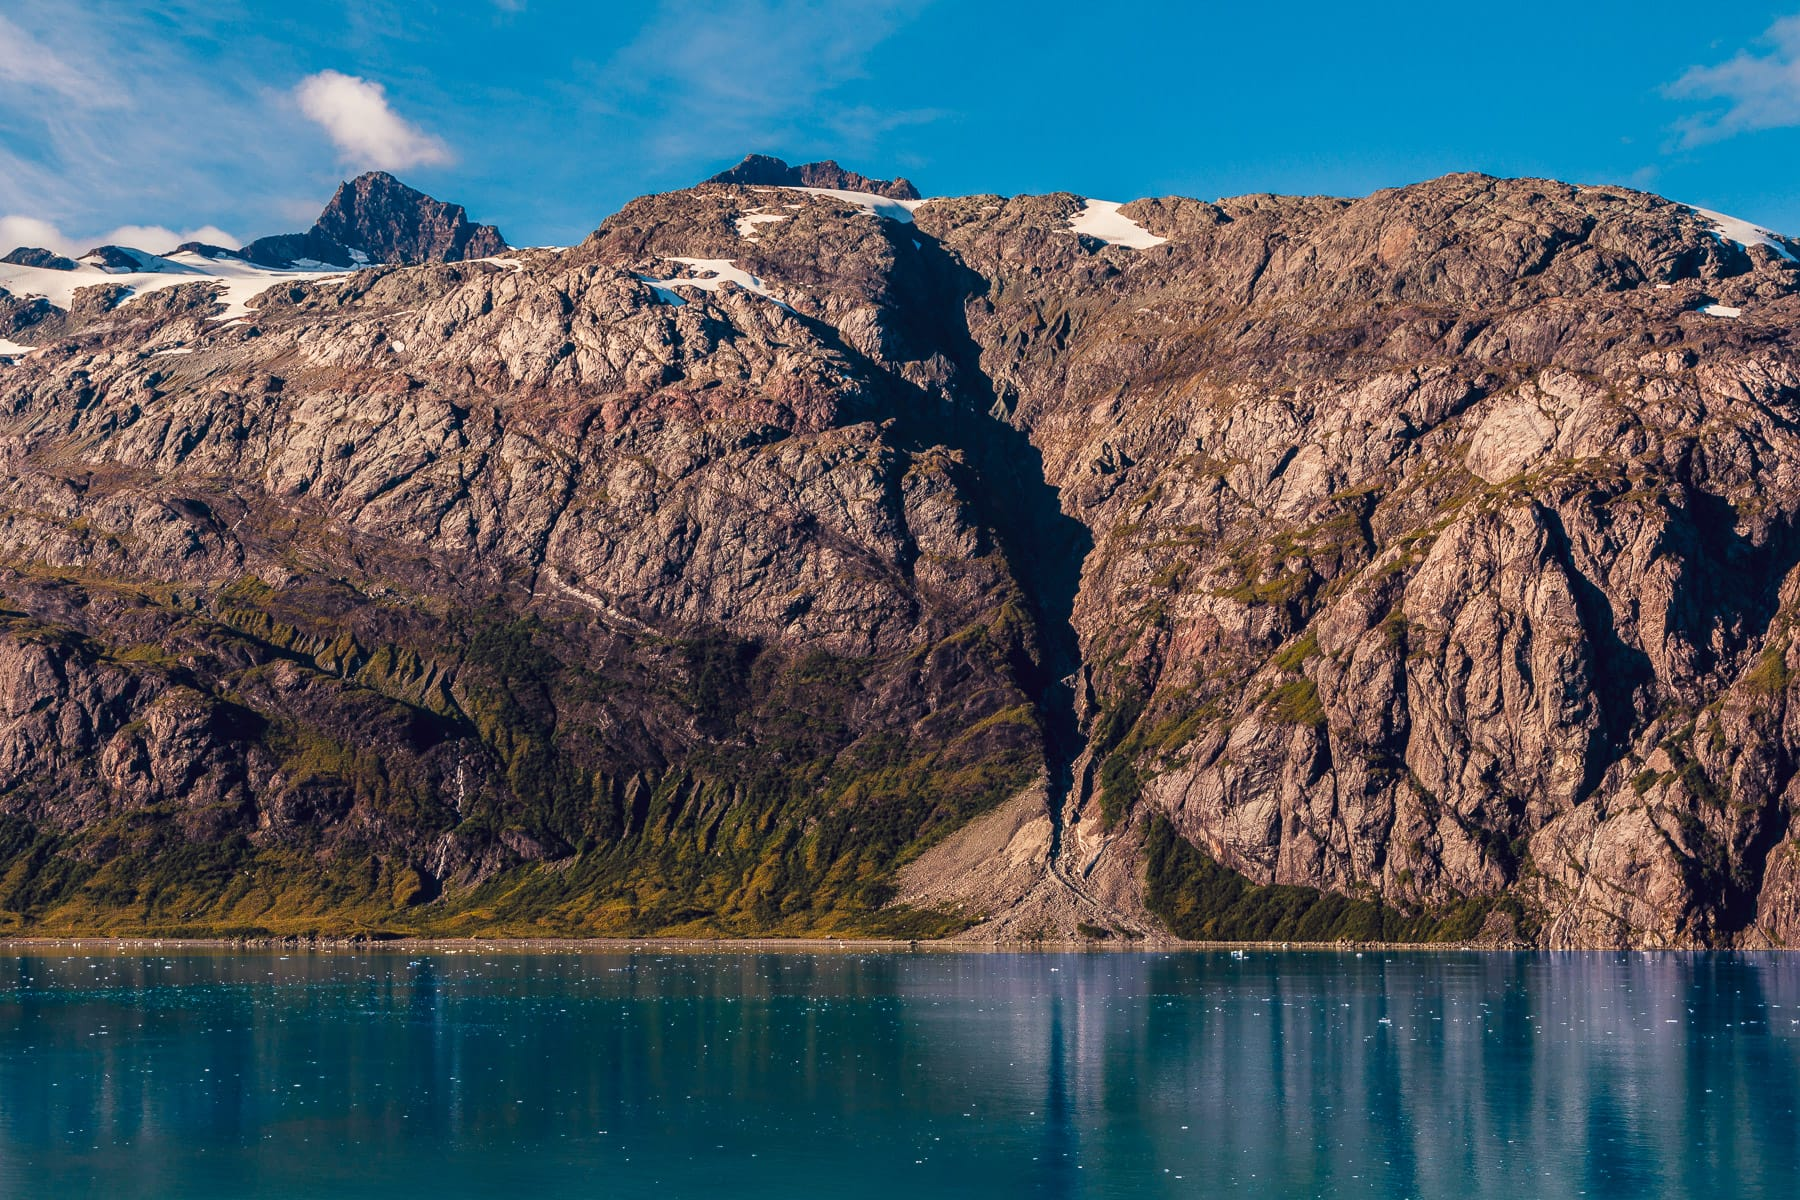 The mountainous landscape of Alaska's Glacier Bay National Park.